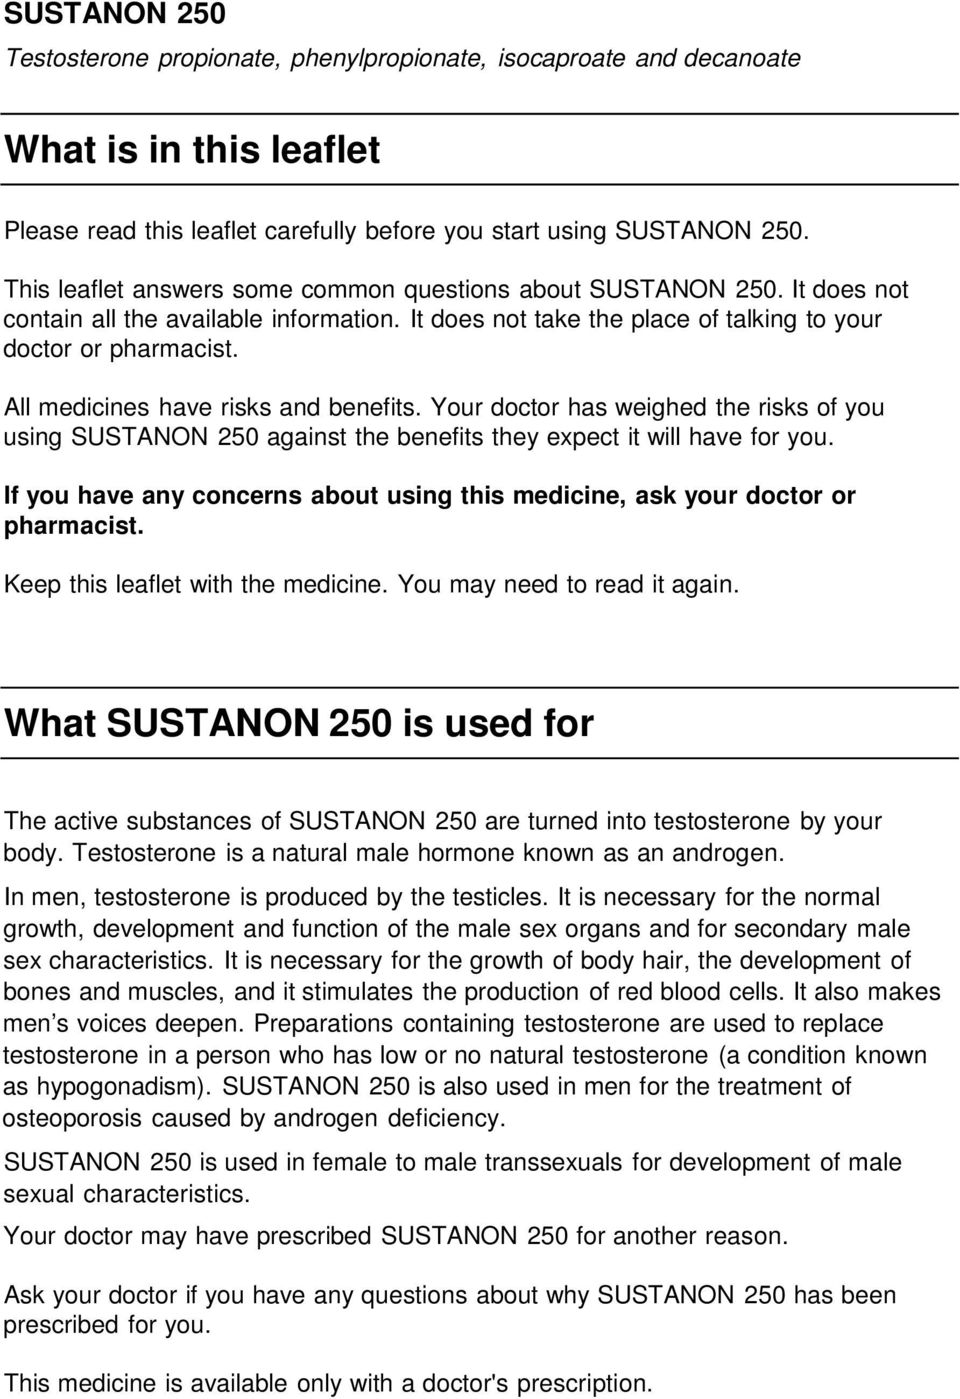 All medicines have risks and benefits. Your doctor has weighed the risks of you using SUSTANON 250 against the benefits they expect it will have for you.